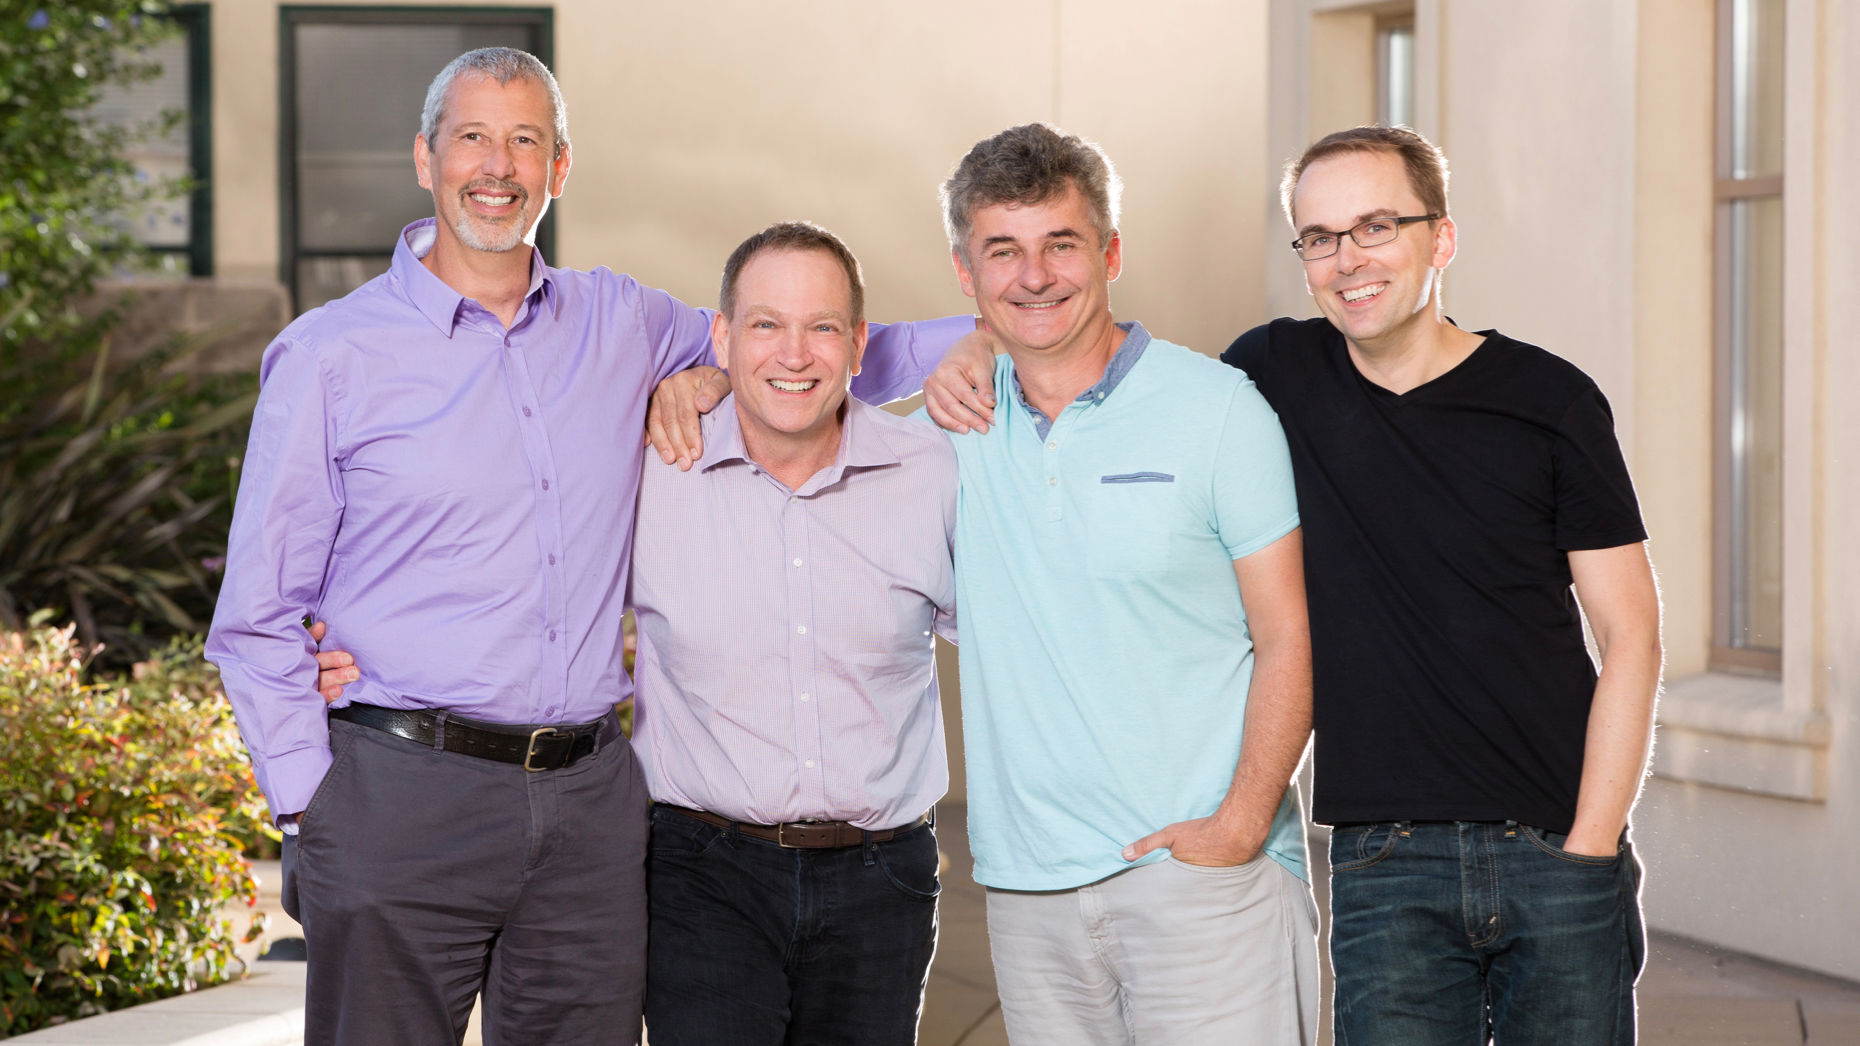 Snowflake's executive leaders (from left) Thierry Cruanes, co-founder and architect; Bob Muglia, CEO; Benoit Dageville, co-founder and CTO; Marcin Zukowski, co-founder. Photo by Snowflake